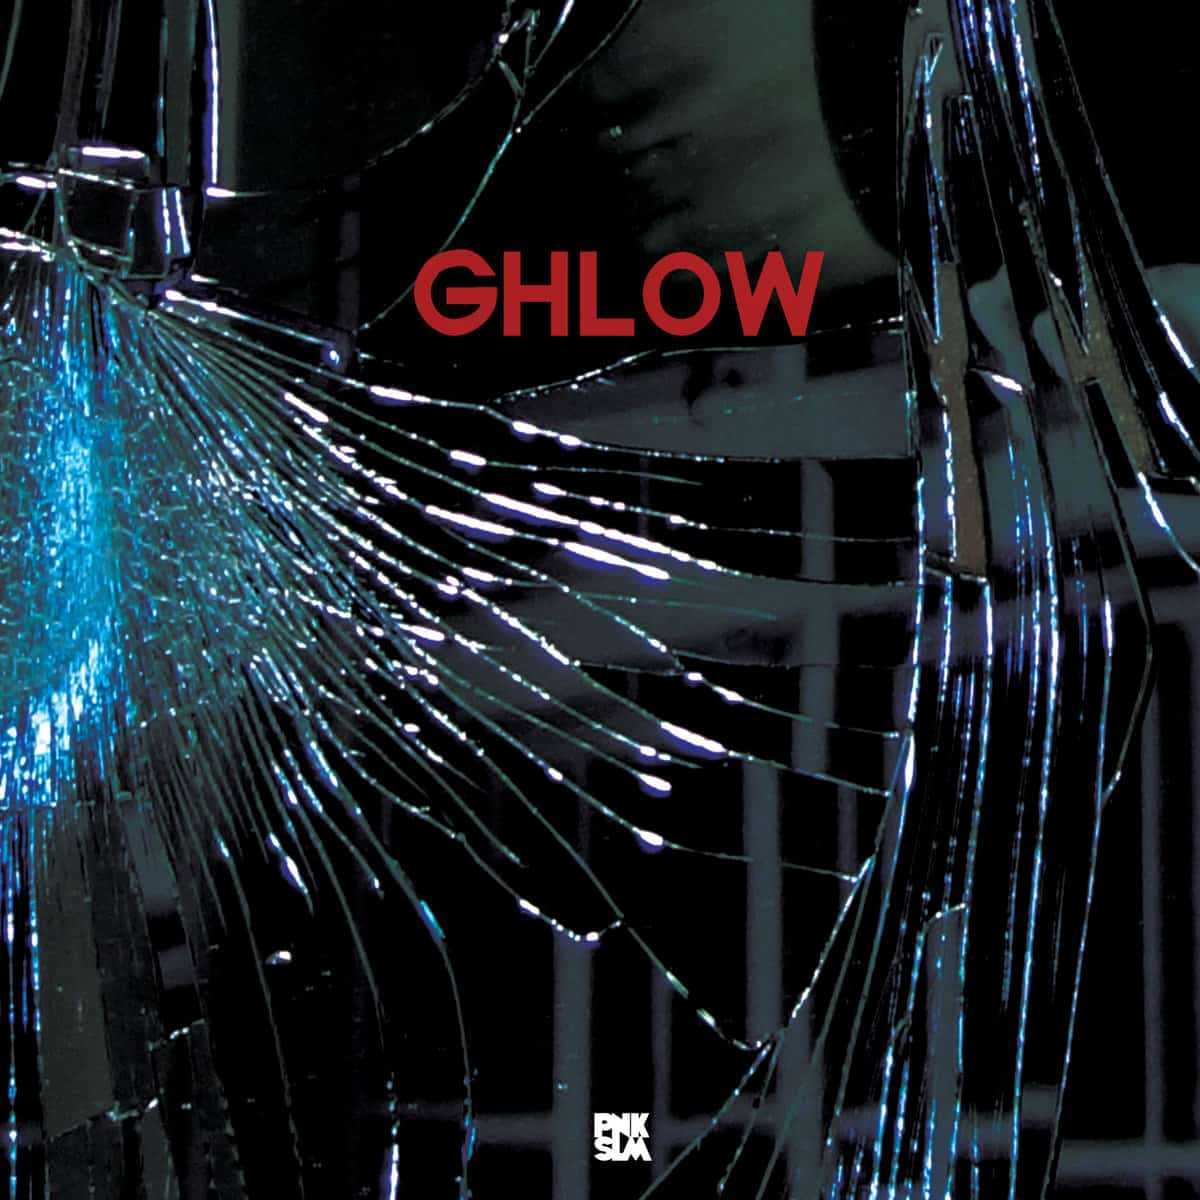 GHLOW - Slash and Burn